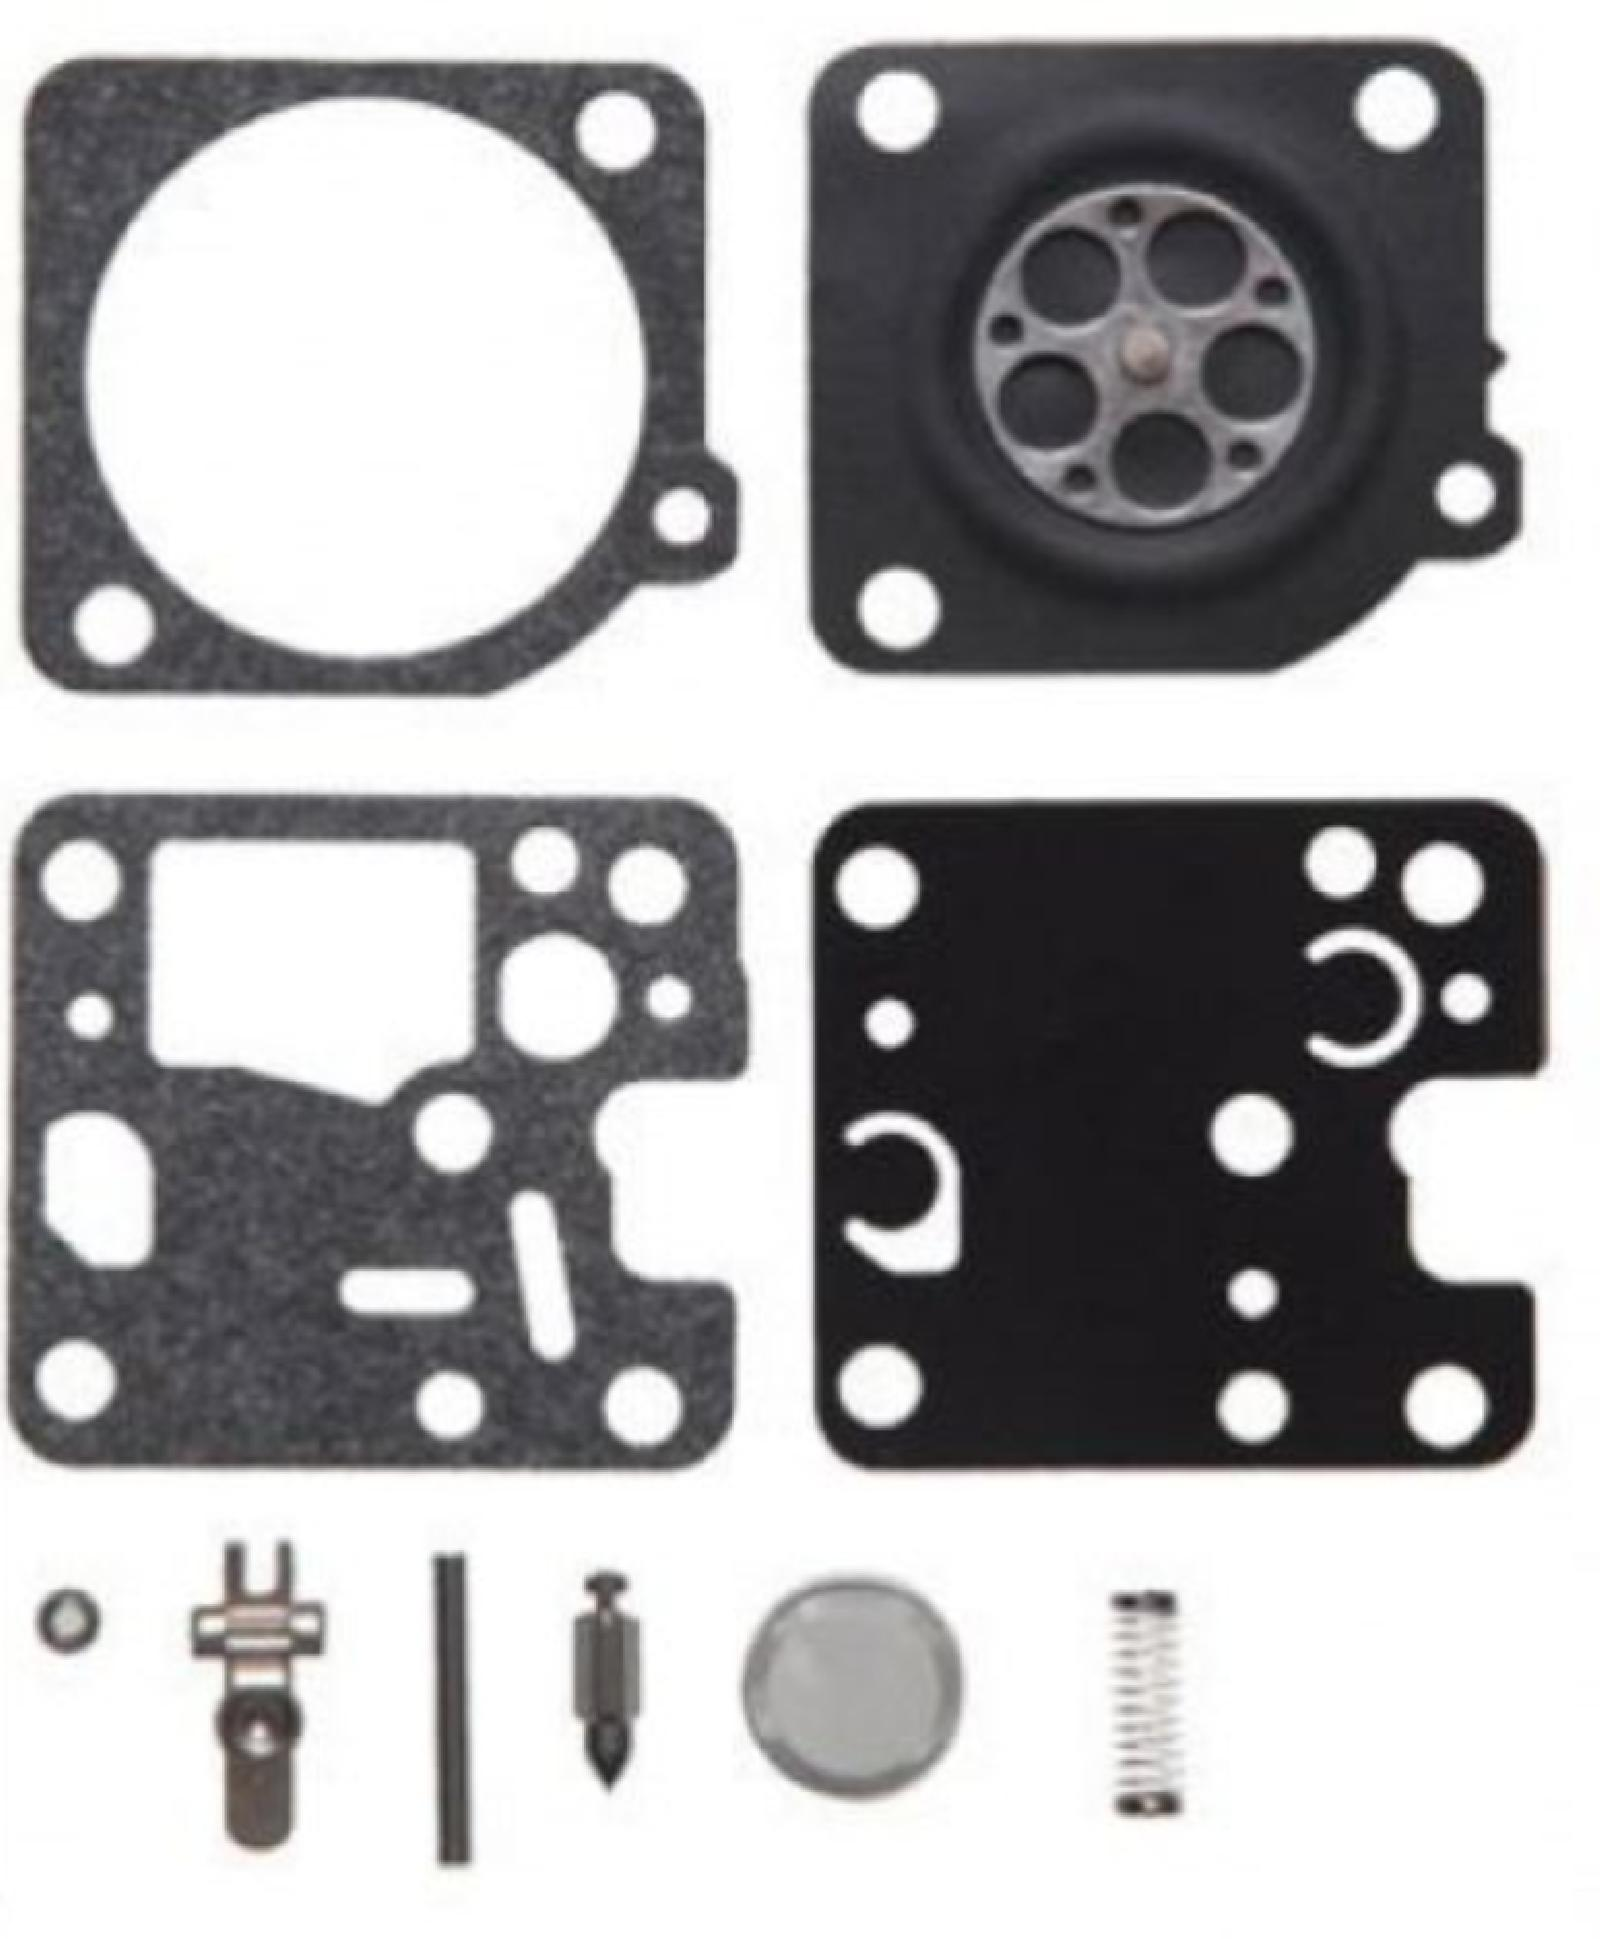 Replacement carburetor gasket and diaphragm kit Zama RB-123